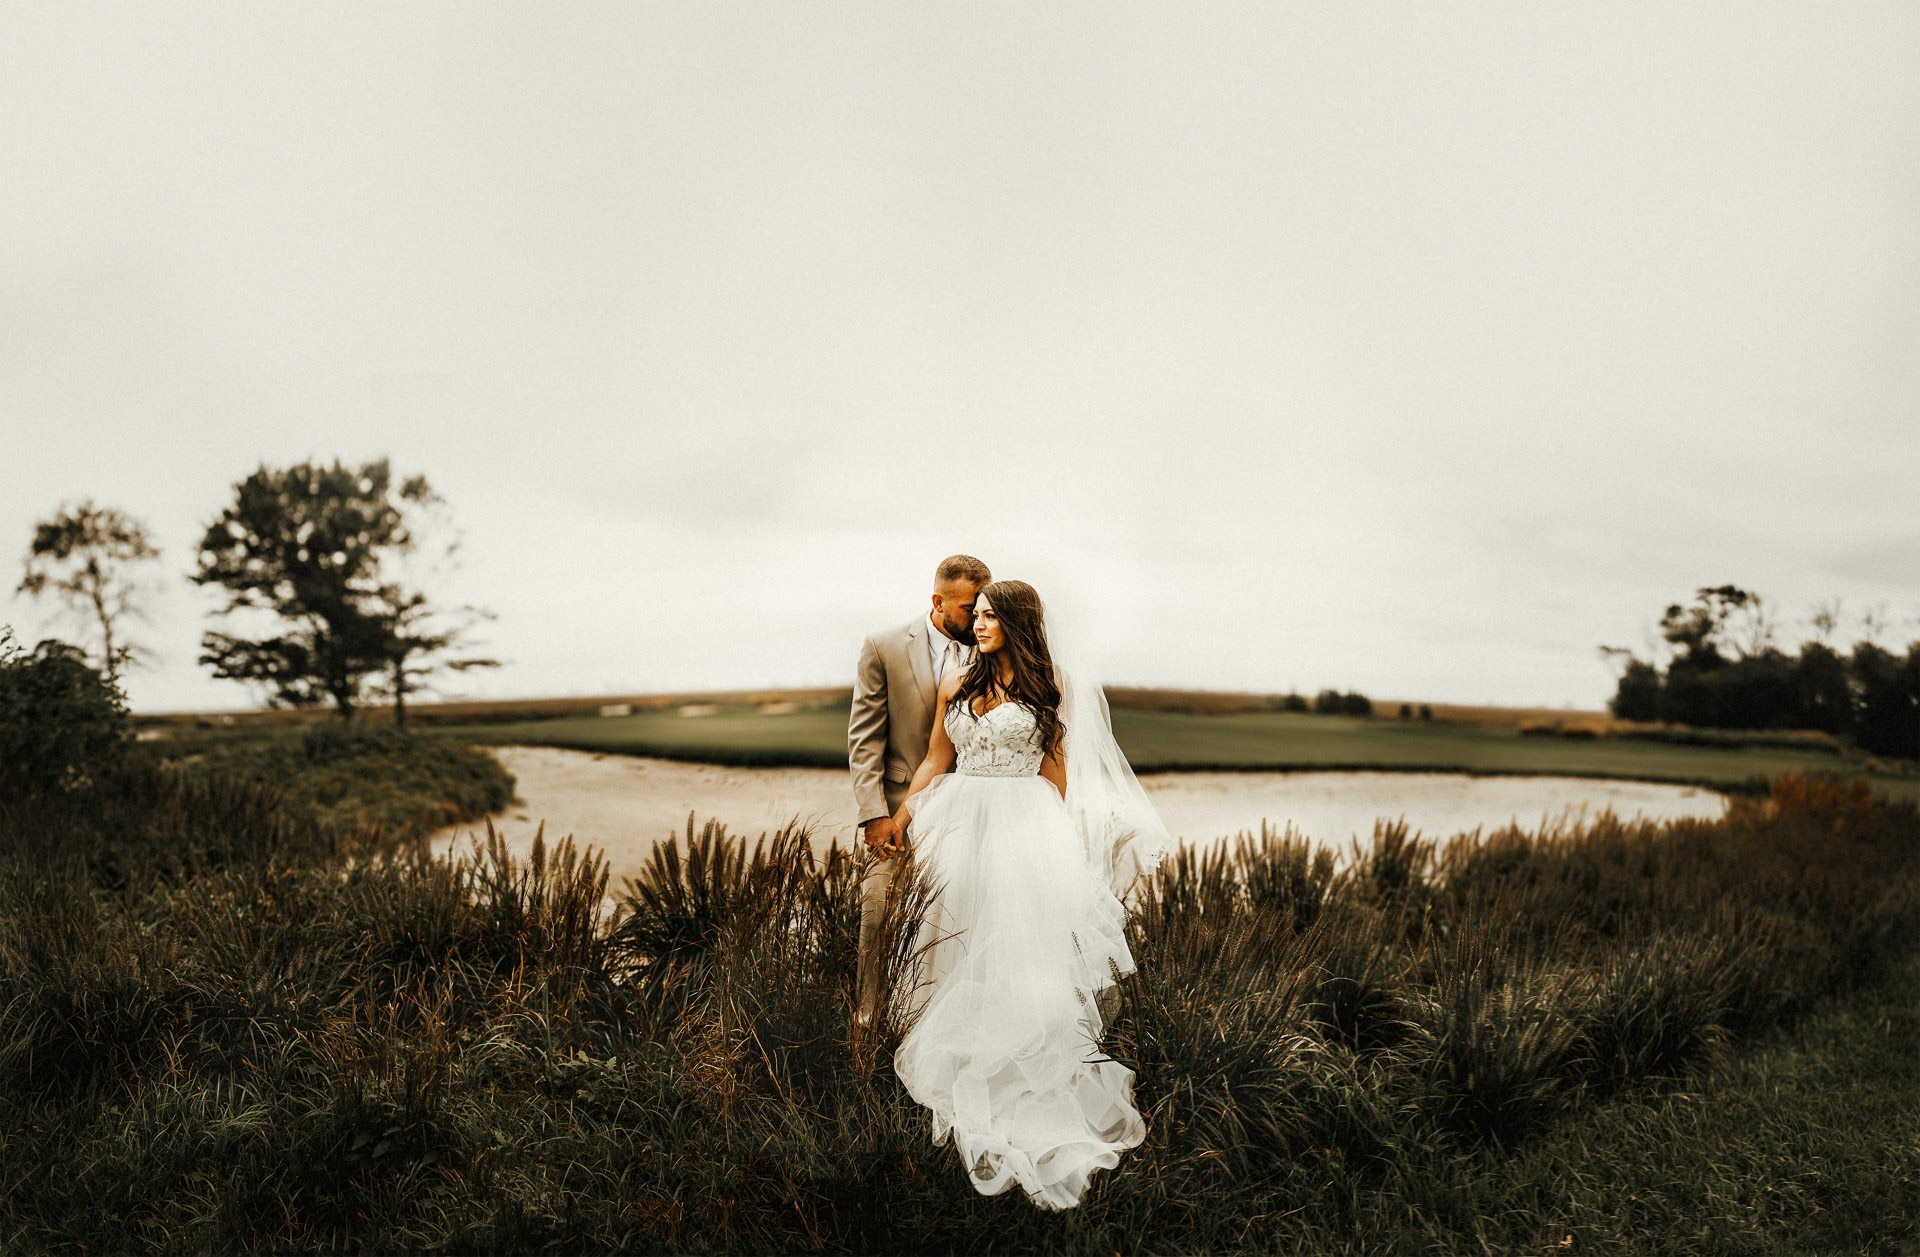 All of our Wedding Vendors: Reviewed | Pine Barren Beauty | wedding photos, wedding photography, wedding photography ideas, bride and groom portraits, blush by Hayley Paige wedding dress, Atlantic City country club, wedding portraits, twisted oaks studio